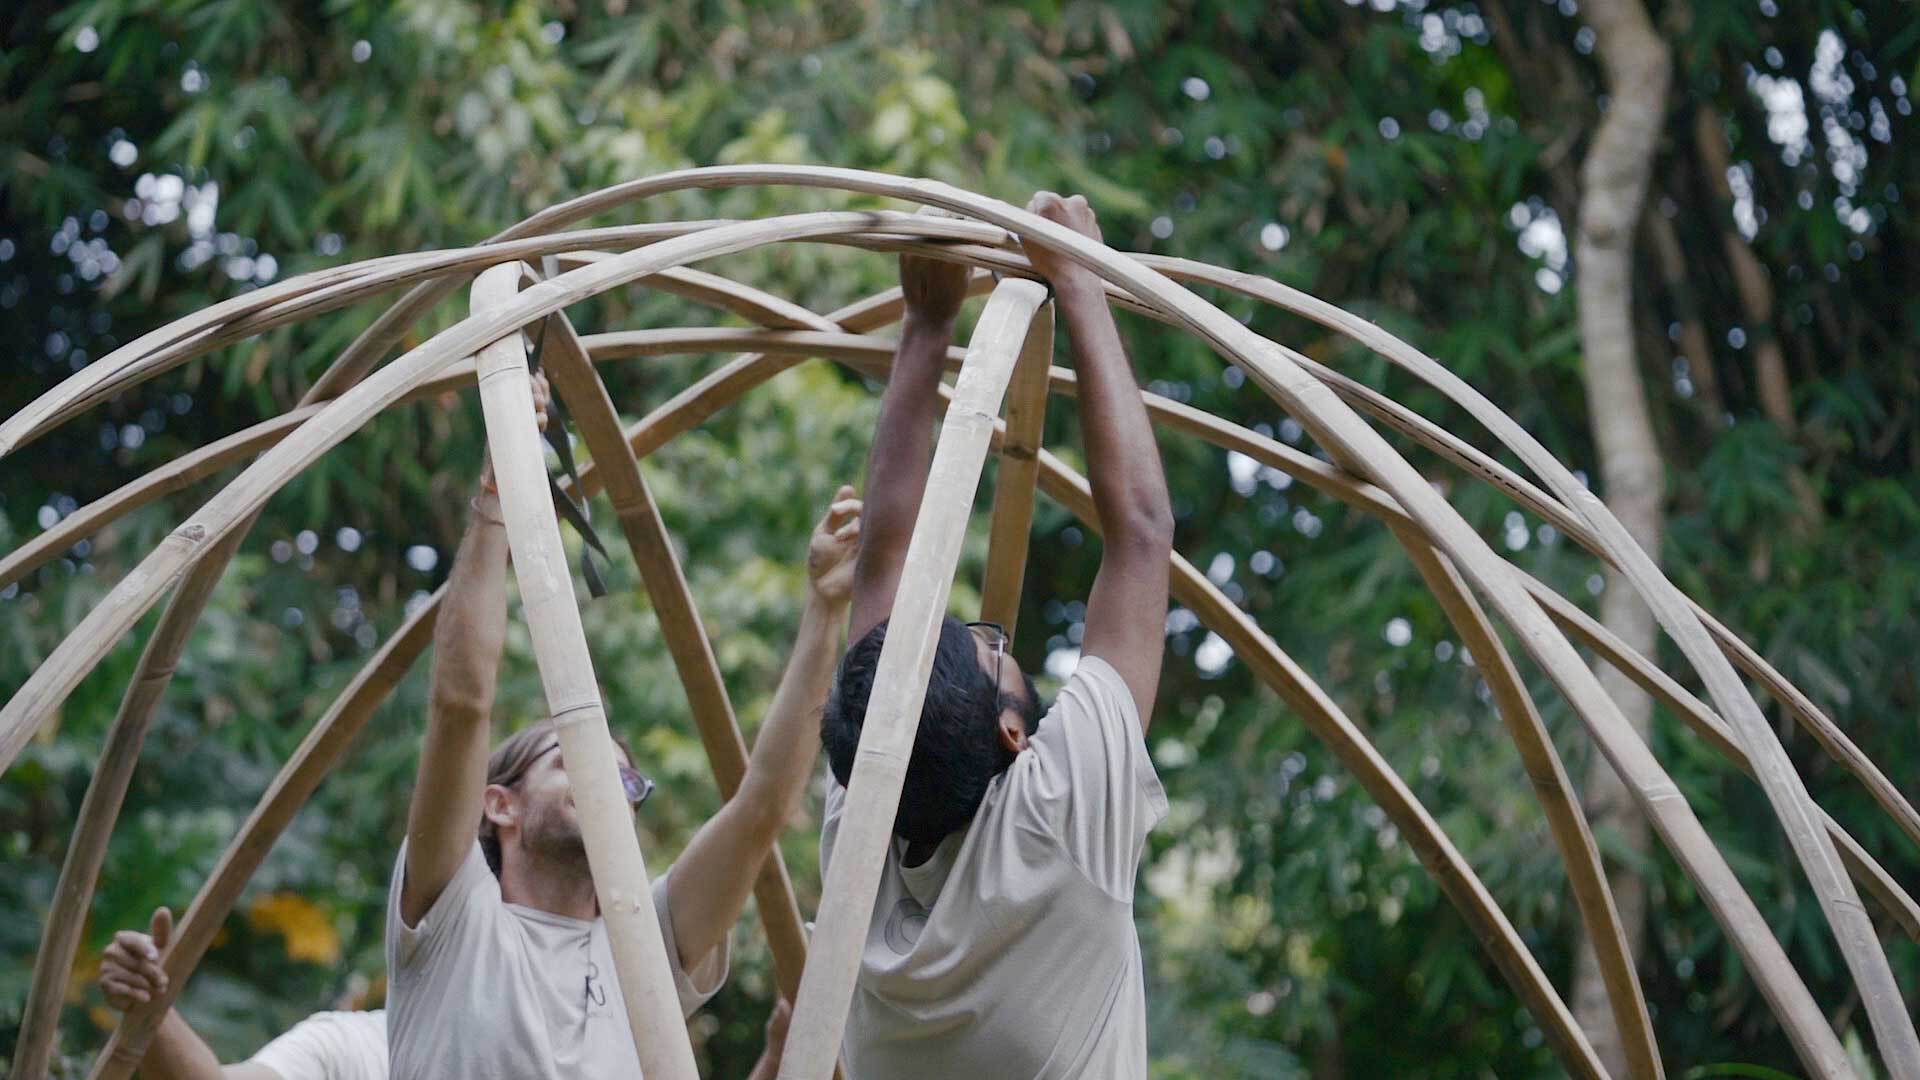 How Bamboo Bends to Create Curved Structures